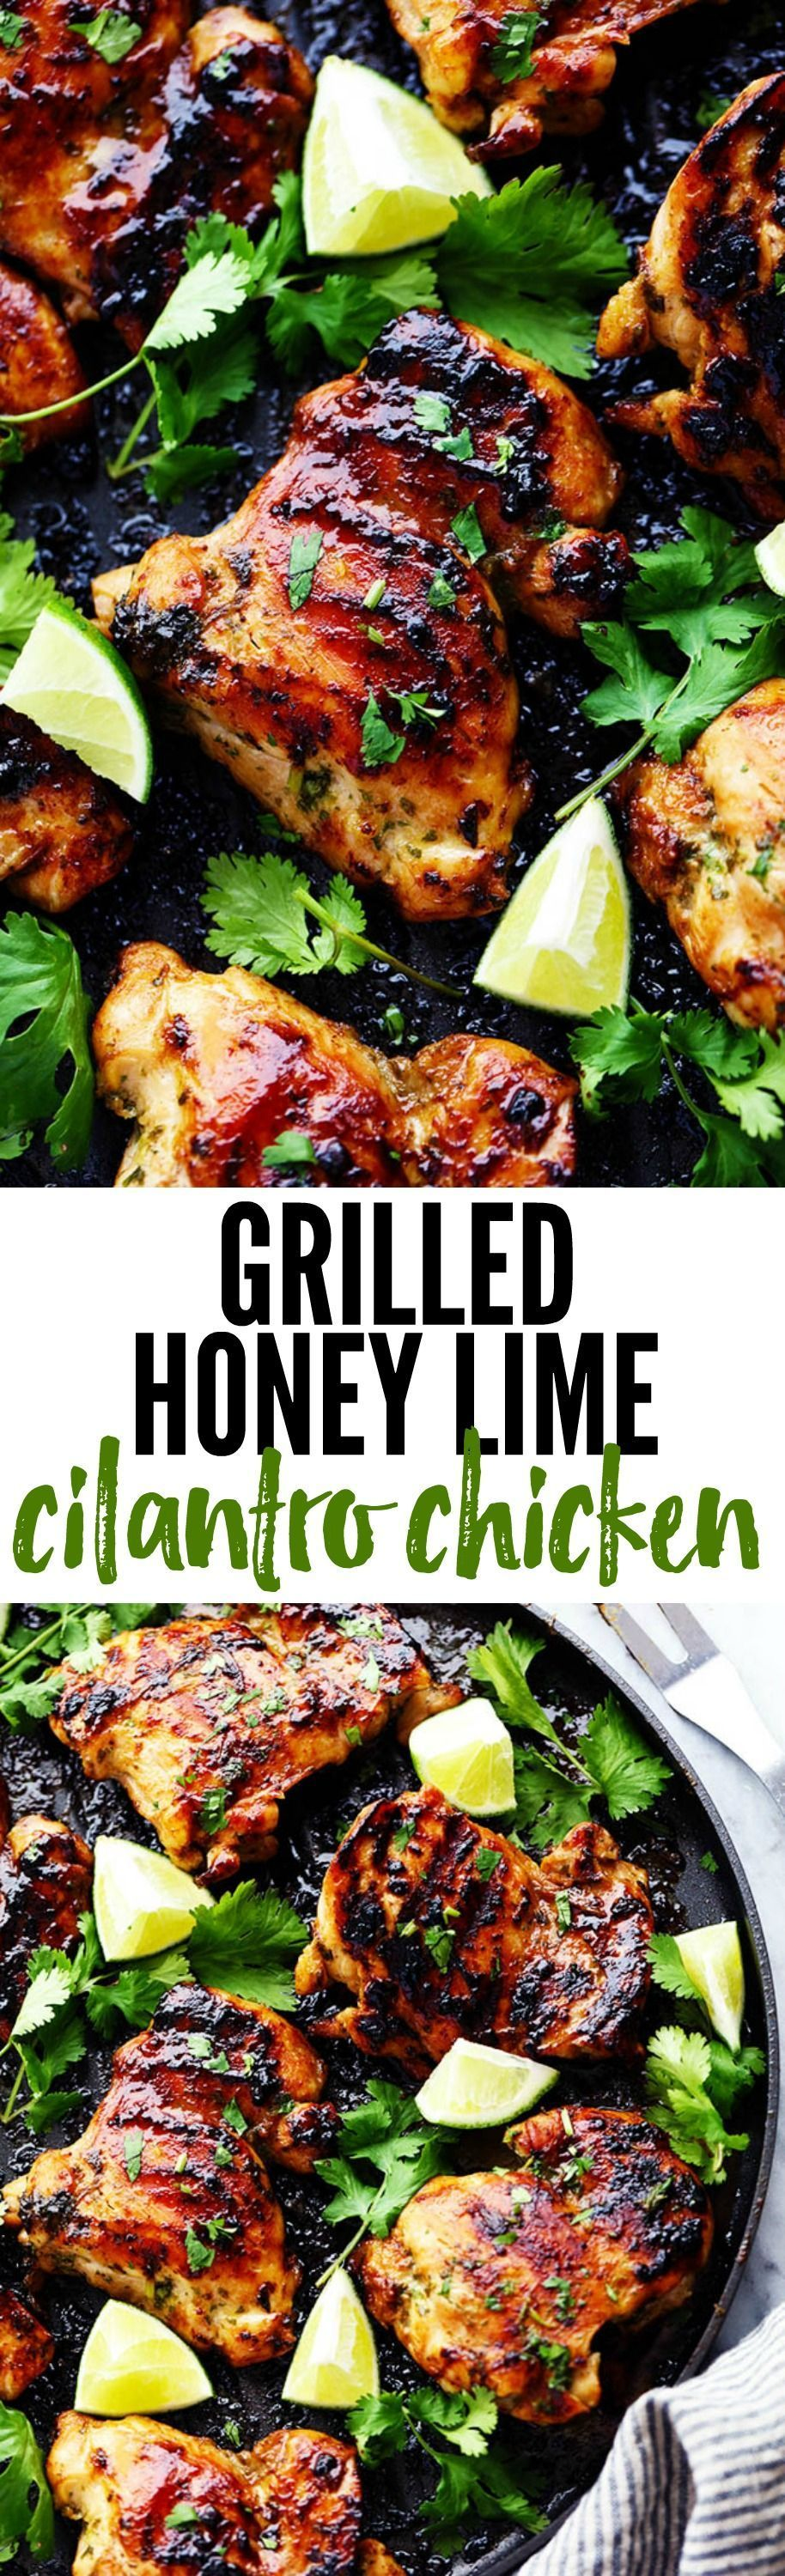 Photo of Perfectly grilled tender and juicy chicken marinated in a ho…